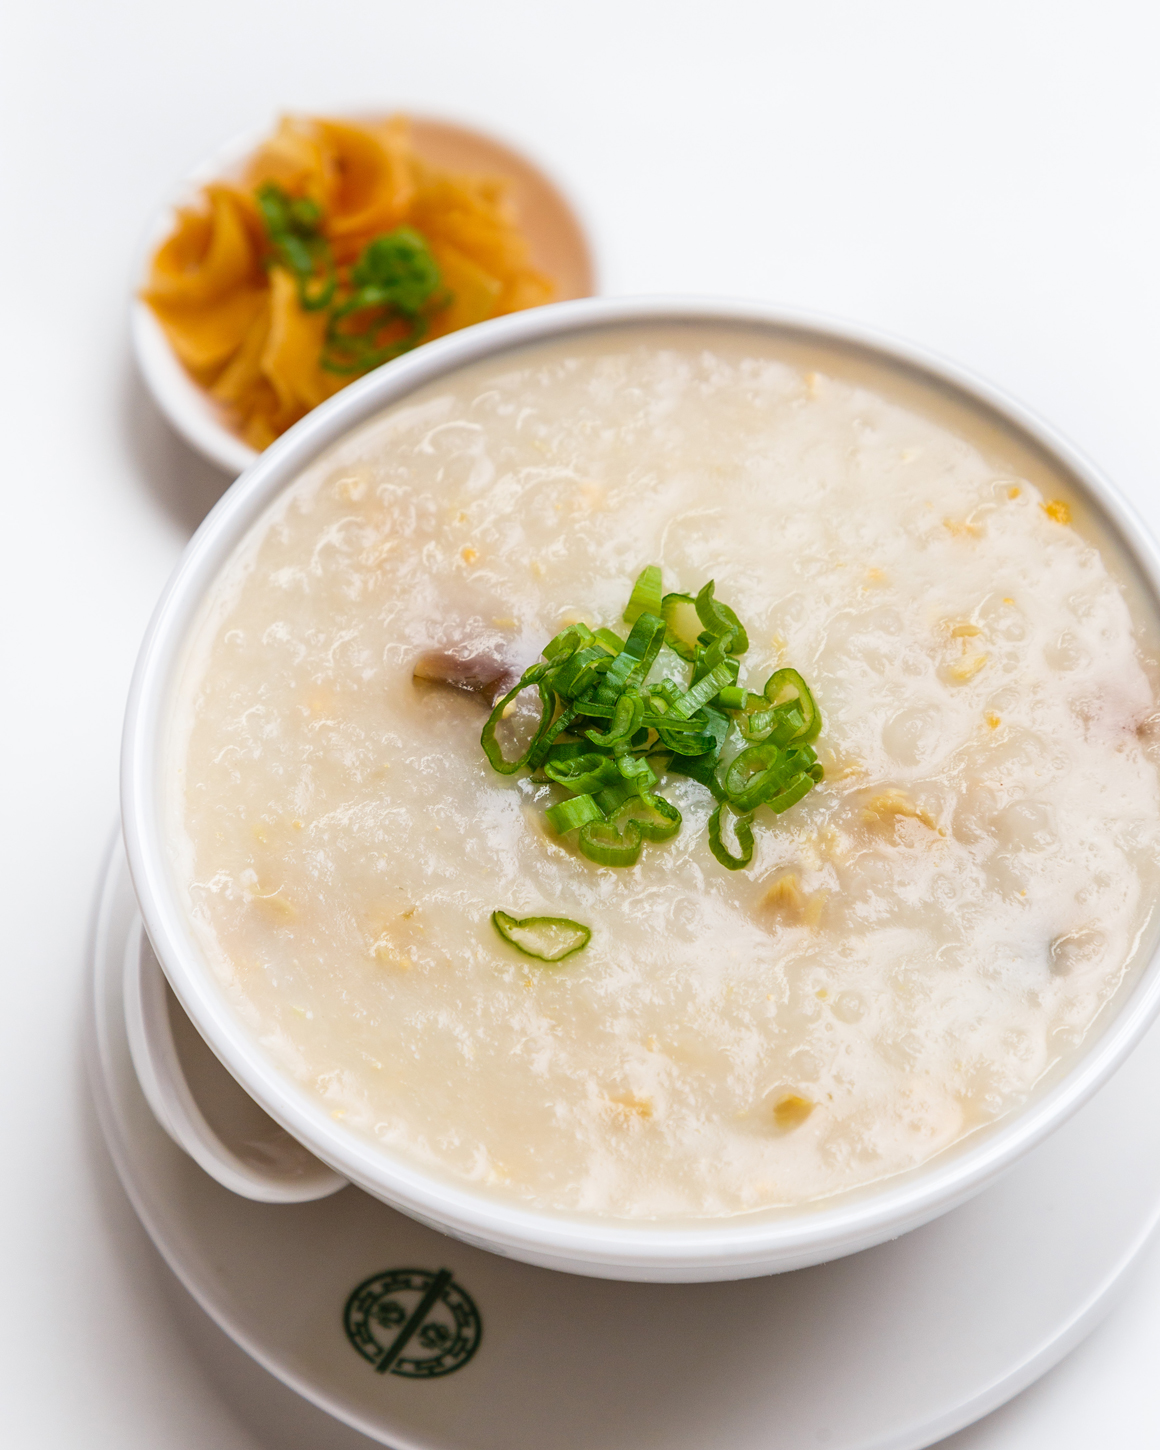 https://shachu.club/wp-content/uploads/2021/04/4.Congee-with-Pork-and-Preserved-Egg.jpg